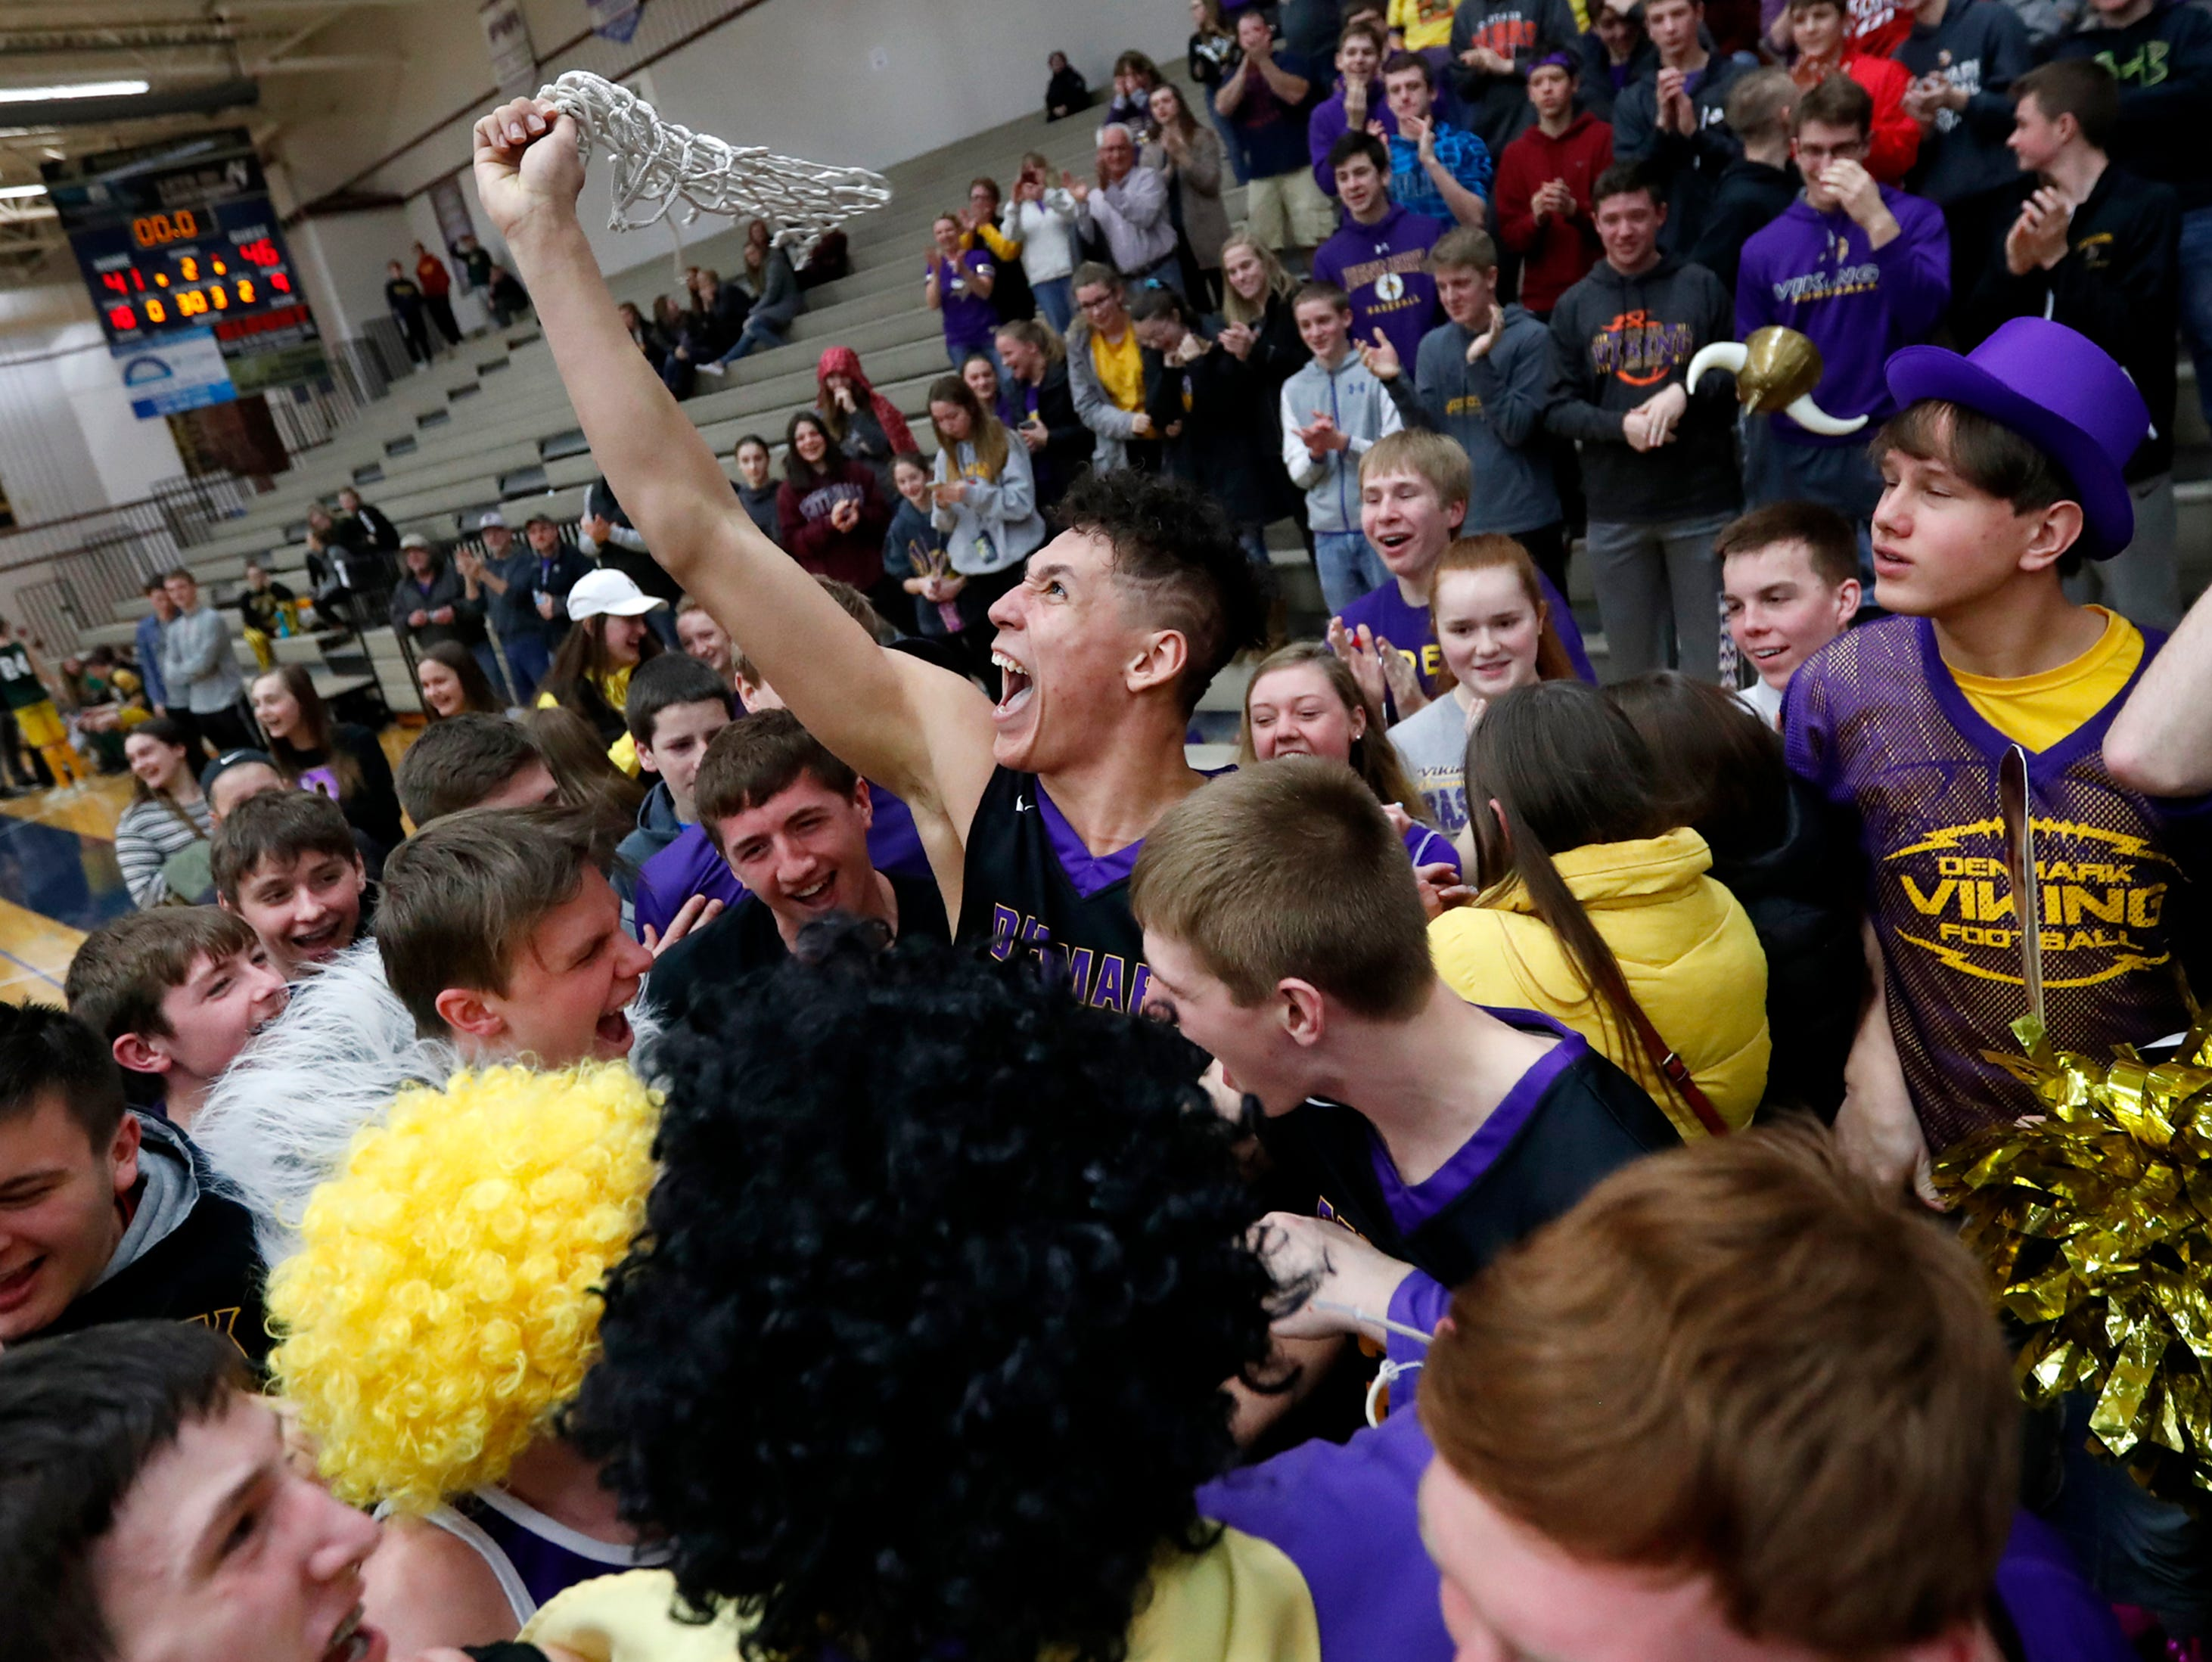 Denmark High SchoolÕs Patrick Suemnick waves the game net in a crowd of fans and players after their 46-41 win over Freedom High School in the D3 sectional final Saturday, March 9, 2019, at Appleton North High School in Appleton, Wis.Danny Damiani/USA TODAY NETWORK-Wisconsin